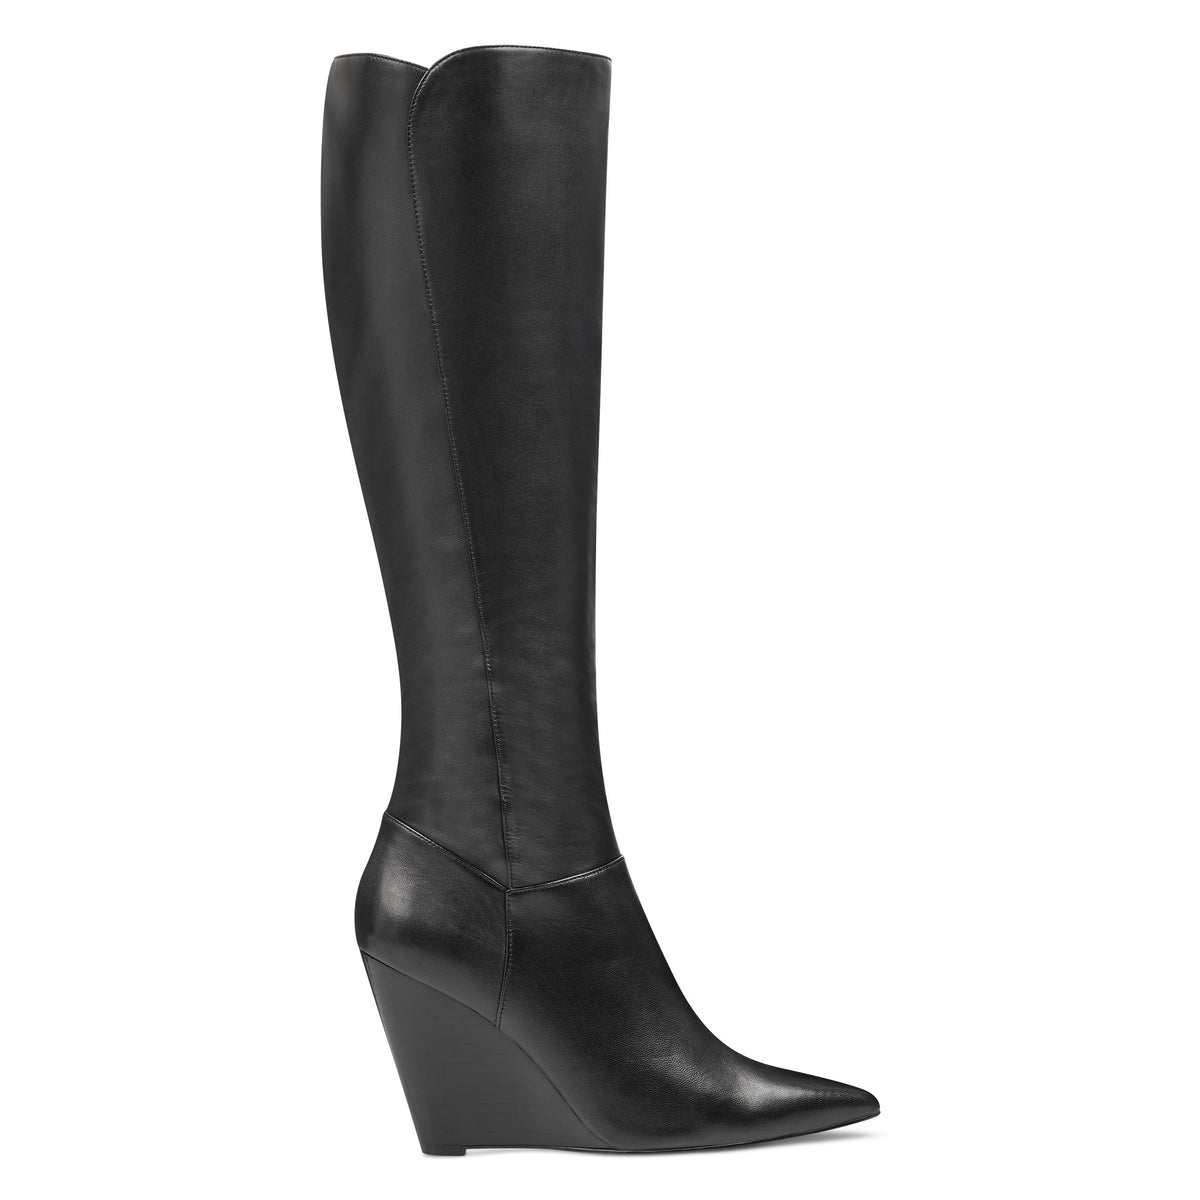 Varin Wide Calf Wedge Boots